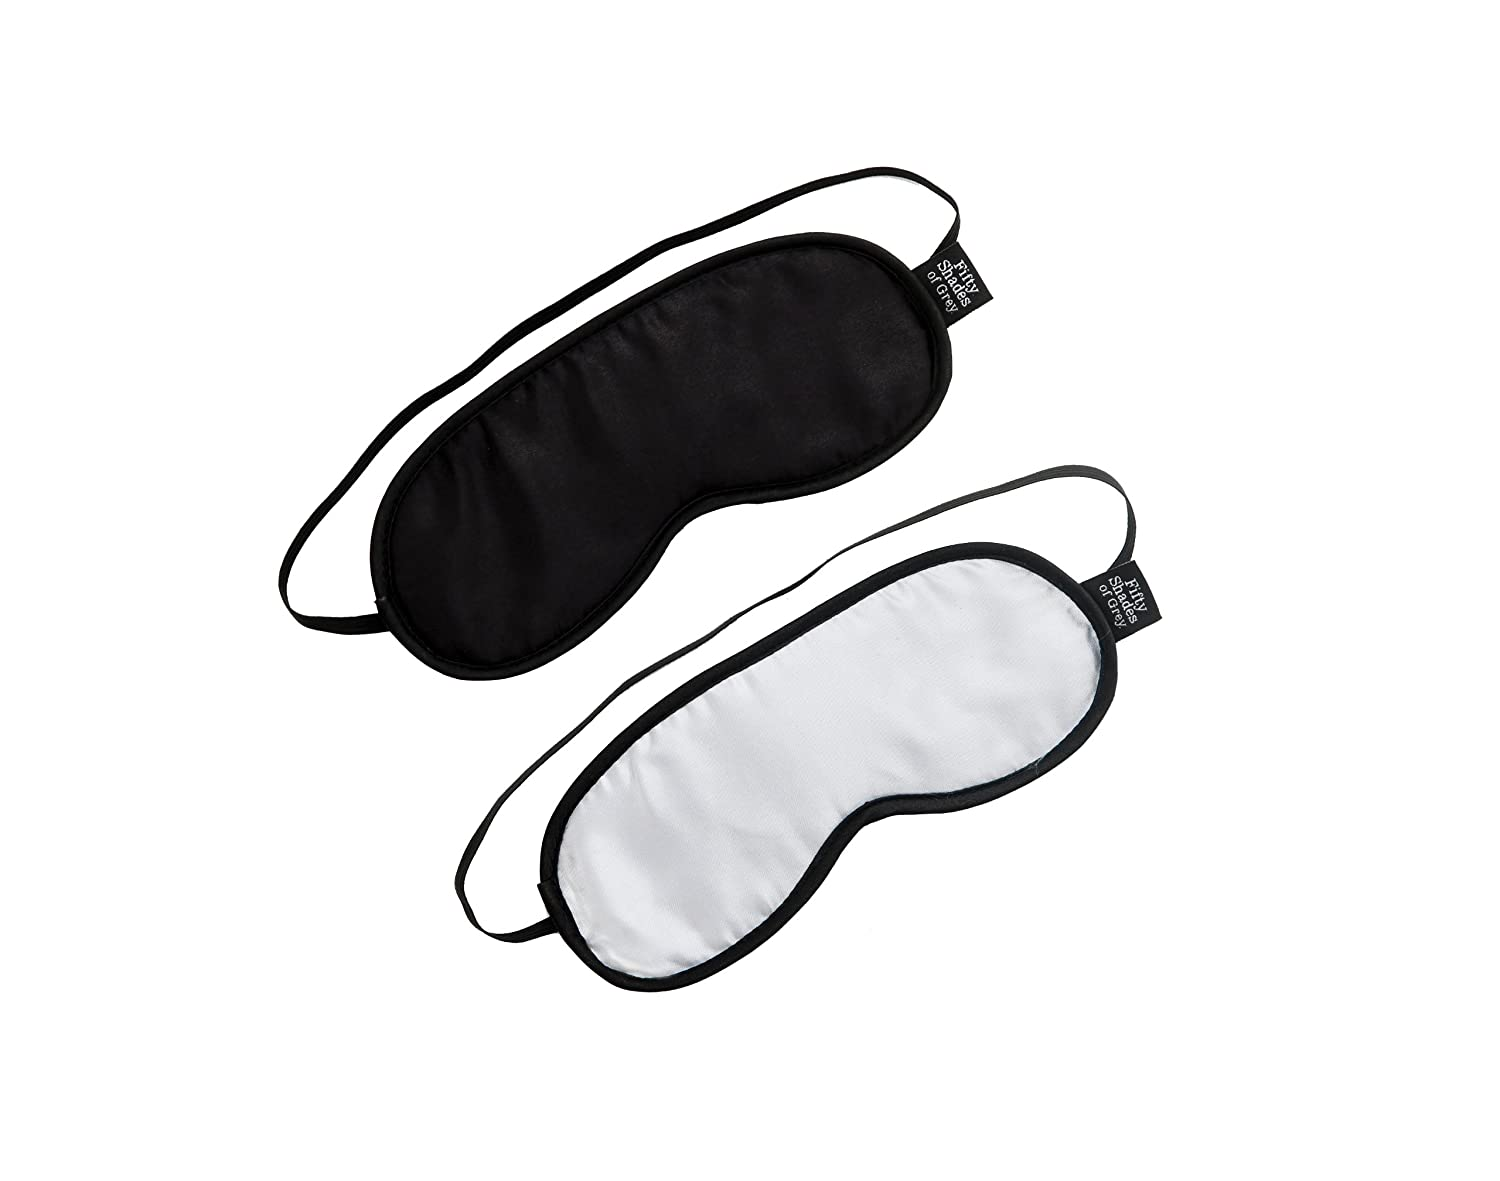 Fifty Shades Of Grey No Peeking Blindfold Twin Pack портупея плетеная черная milla black